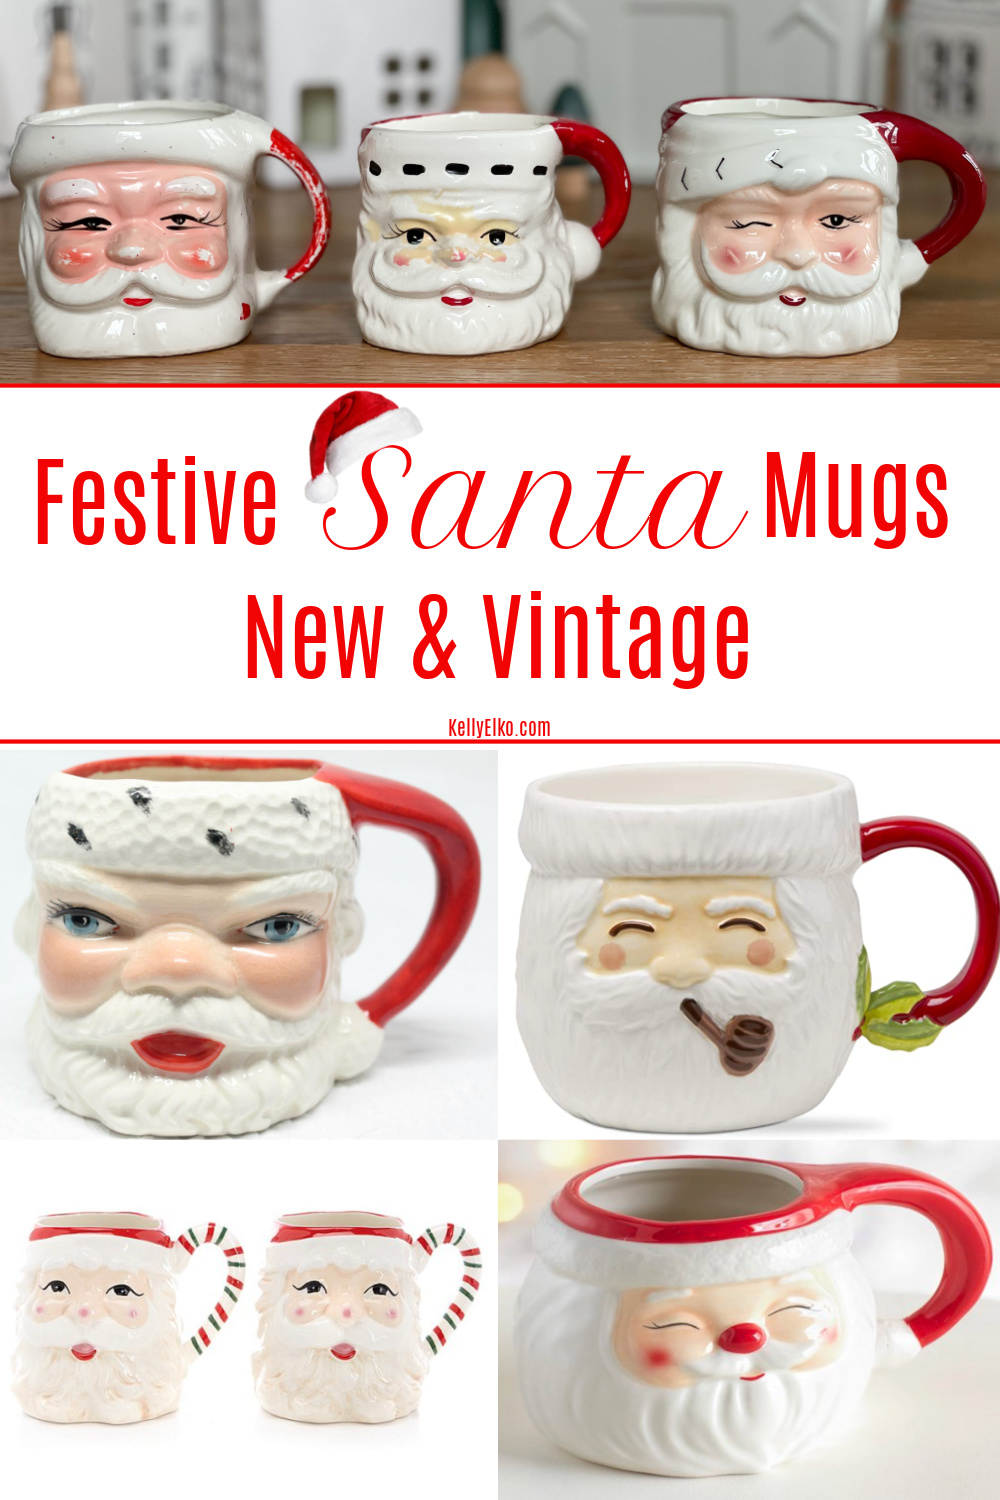 Festive Santa Mugs Vintage & New - where to find them! kellyelko.com #vintagechristmas #santa #santadecor #santamugs #vintagesanta #retrochristmas #christmascollections #vintagecollections #farmhousechristmas #christmasdecor #christmaskitchen